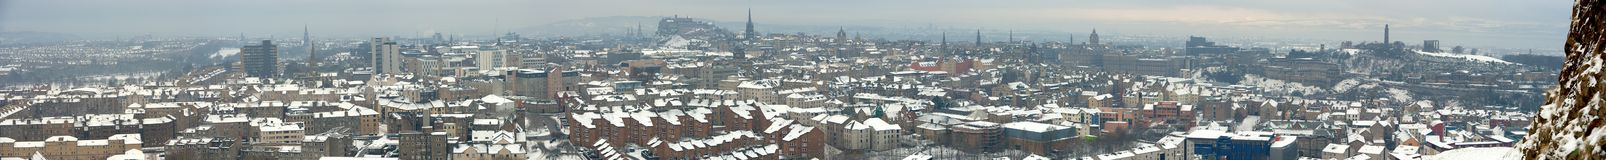 Panorama di Edinburgh, Scozia, in neve fotografia stock